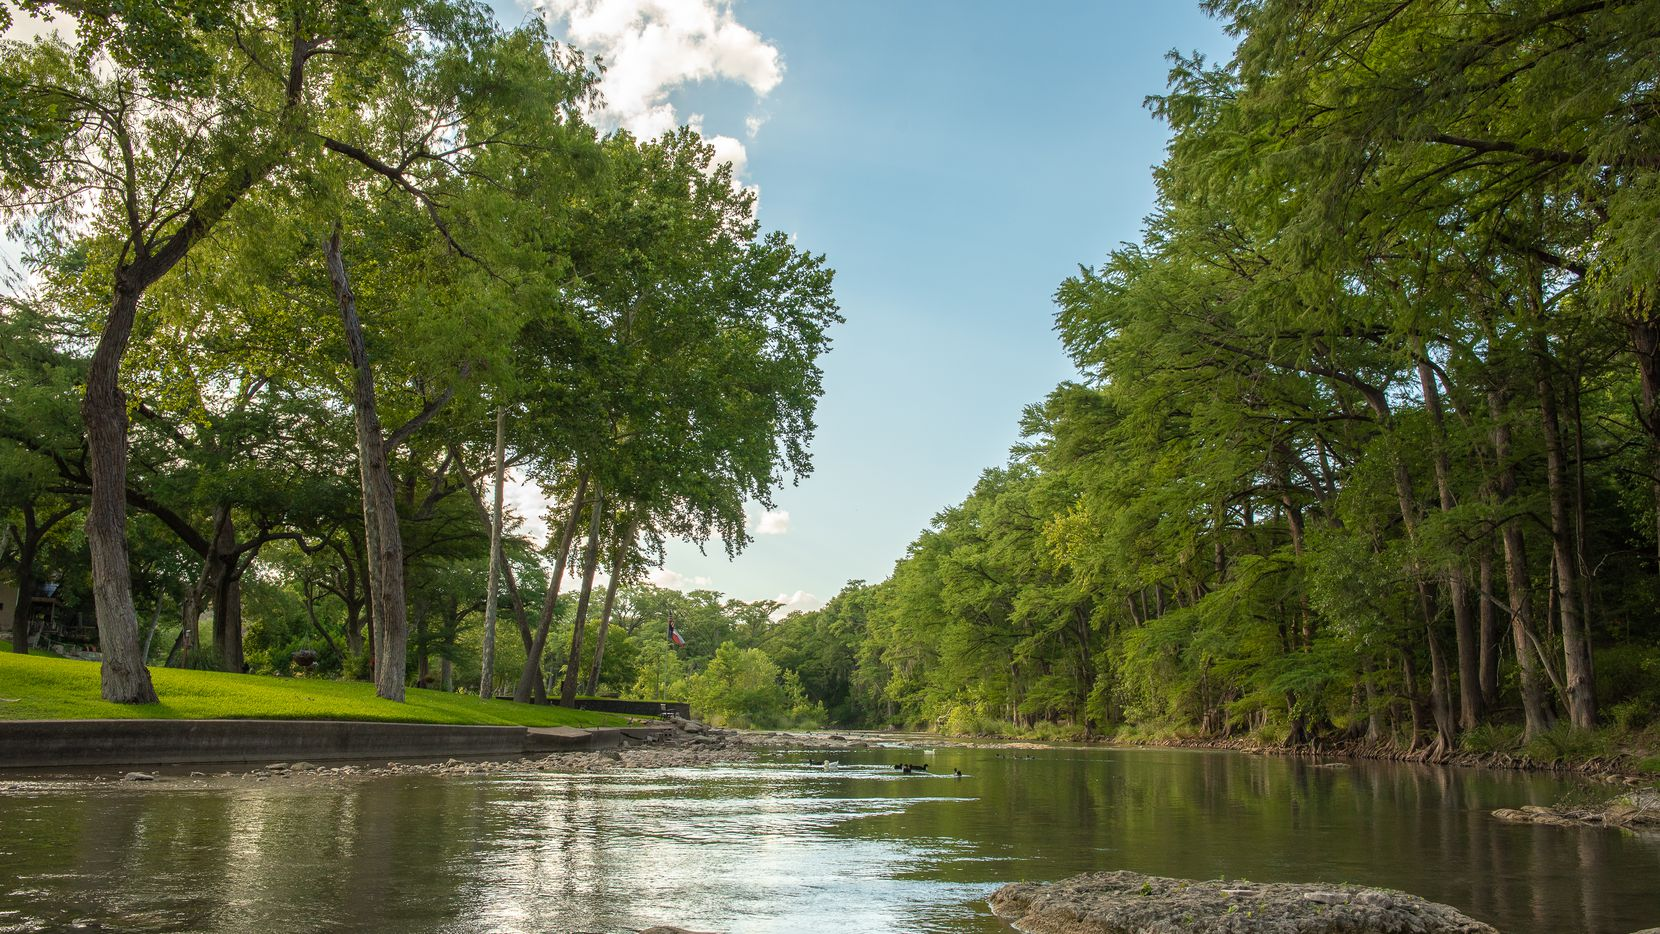 Camp Fimfo is a new RV hookup campground on the shores of the Guadalupe River in New Braunfels, Texas